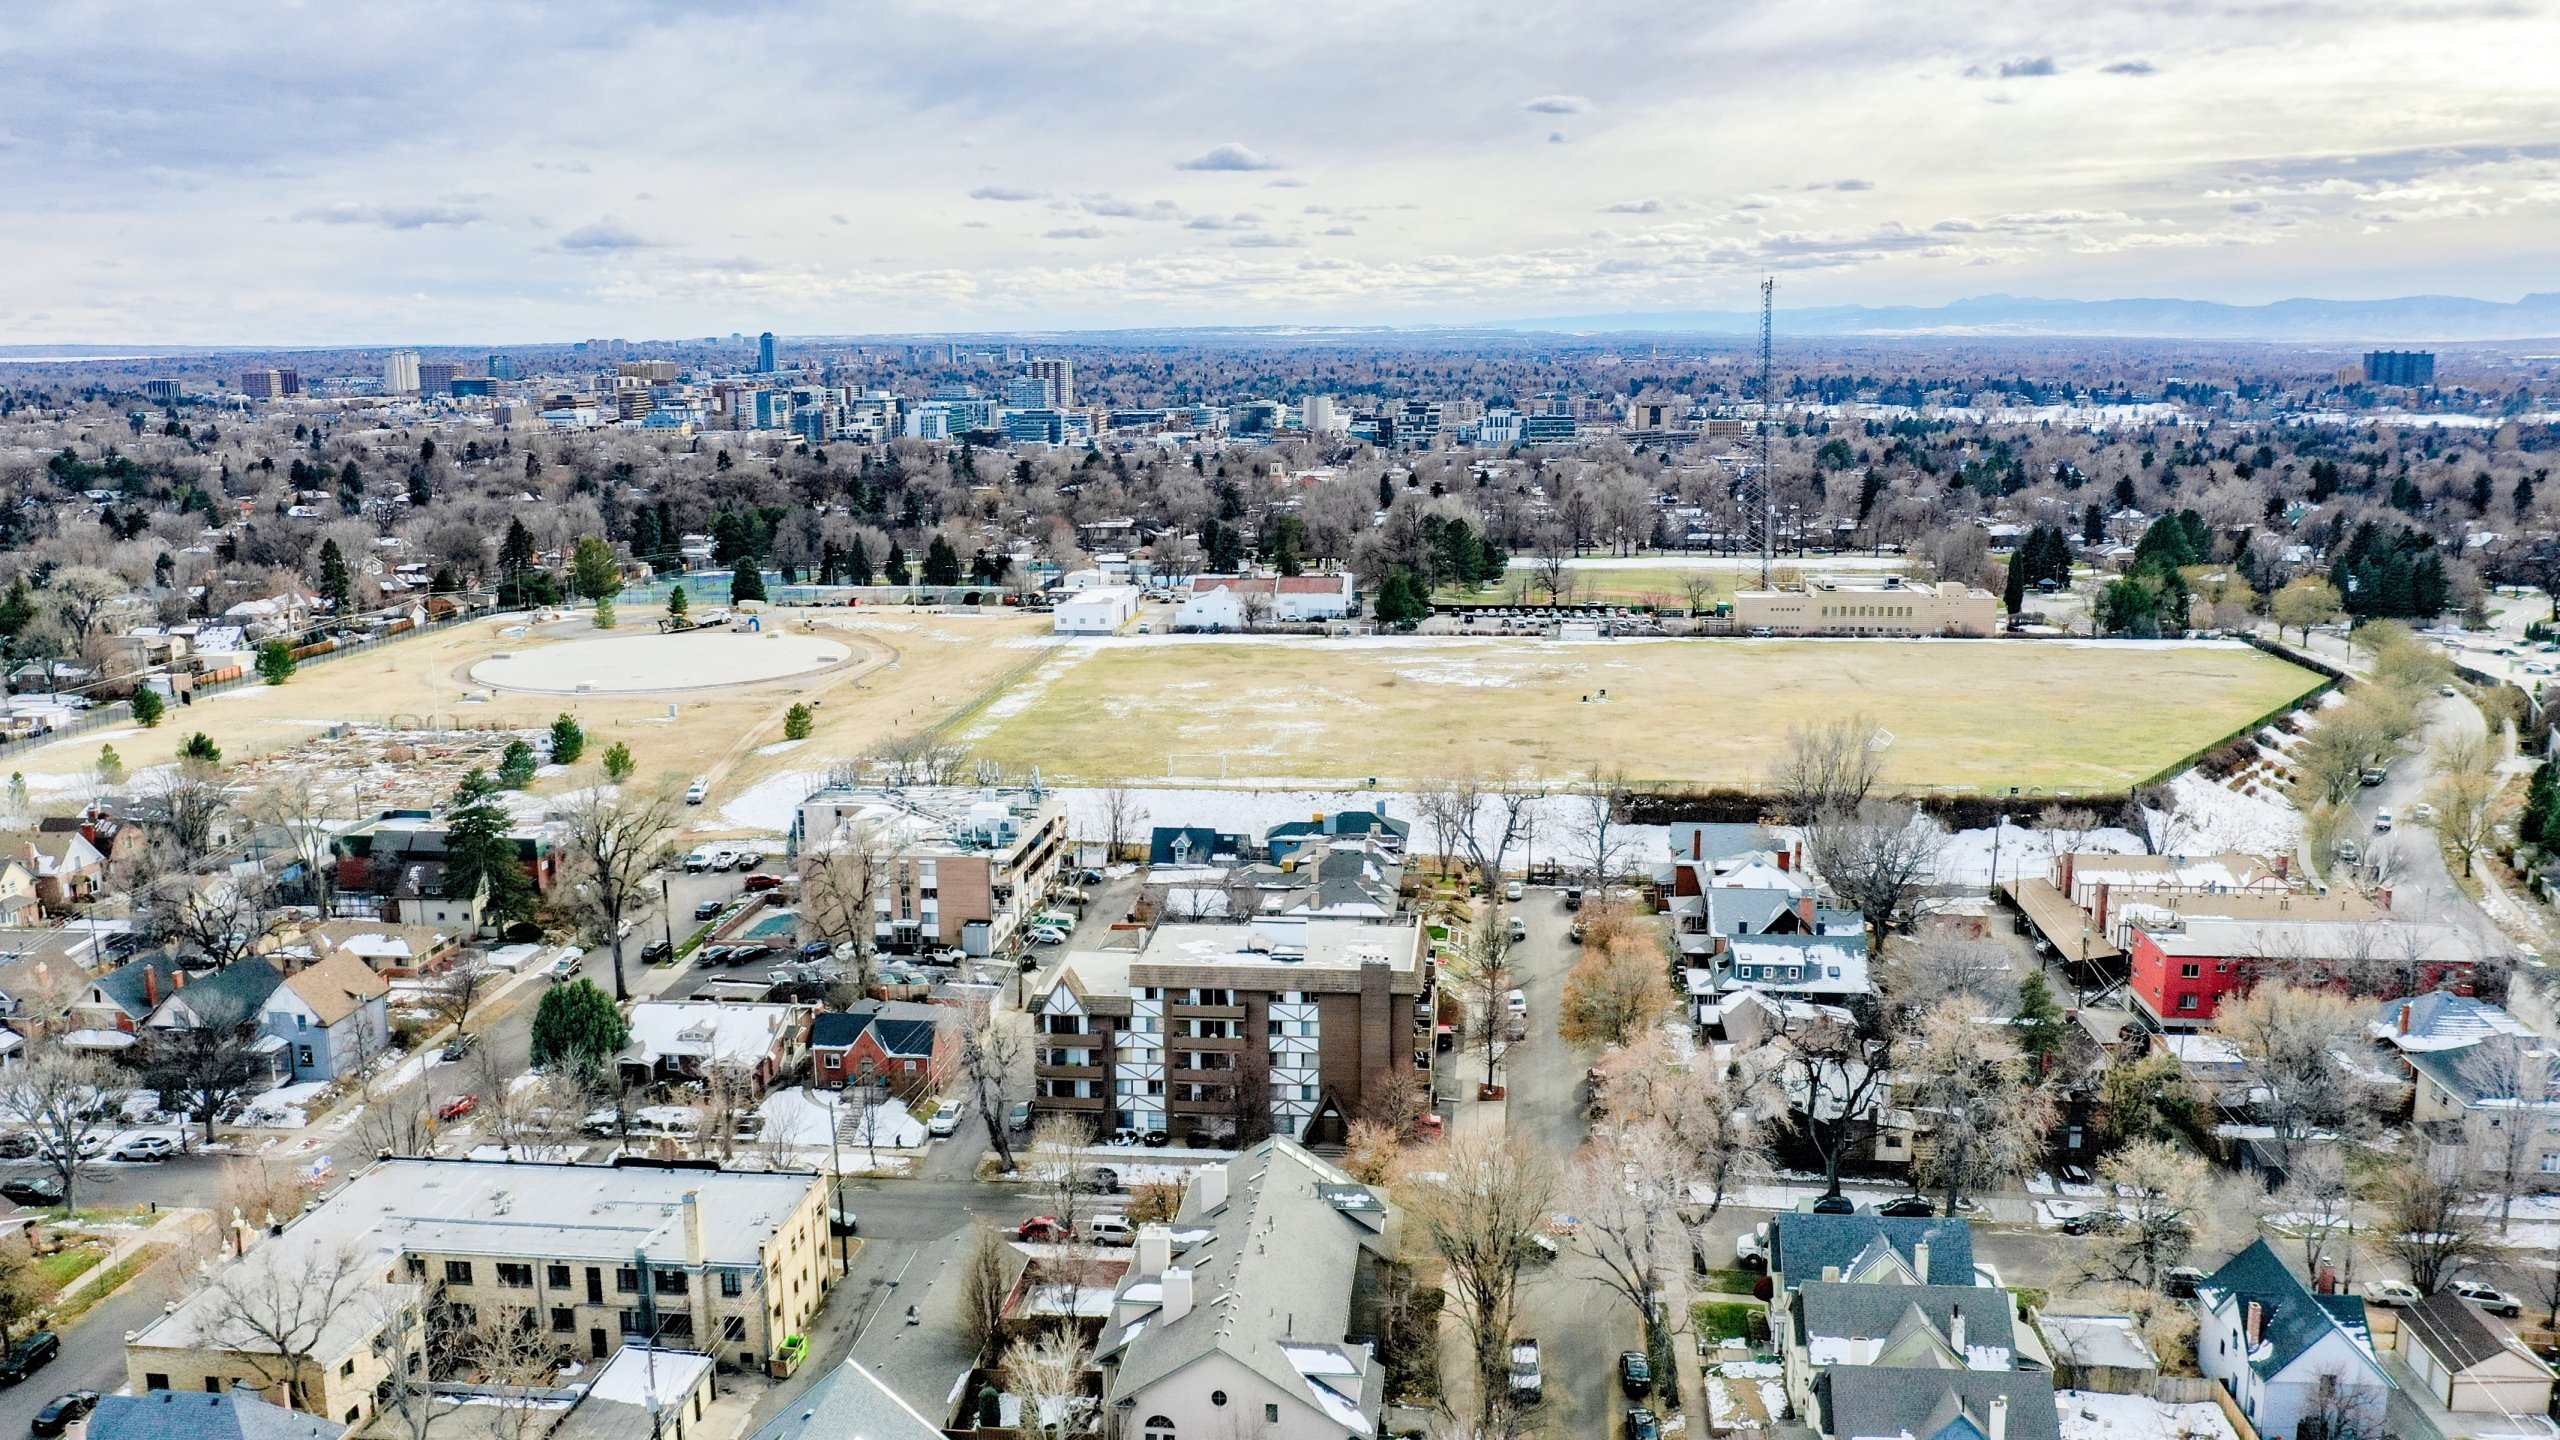 Congress Park Aerial From Drone